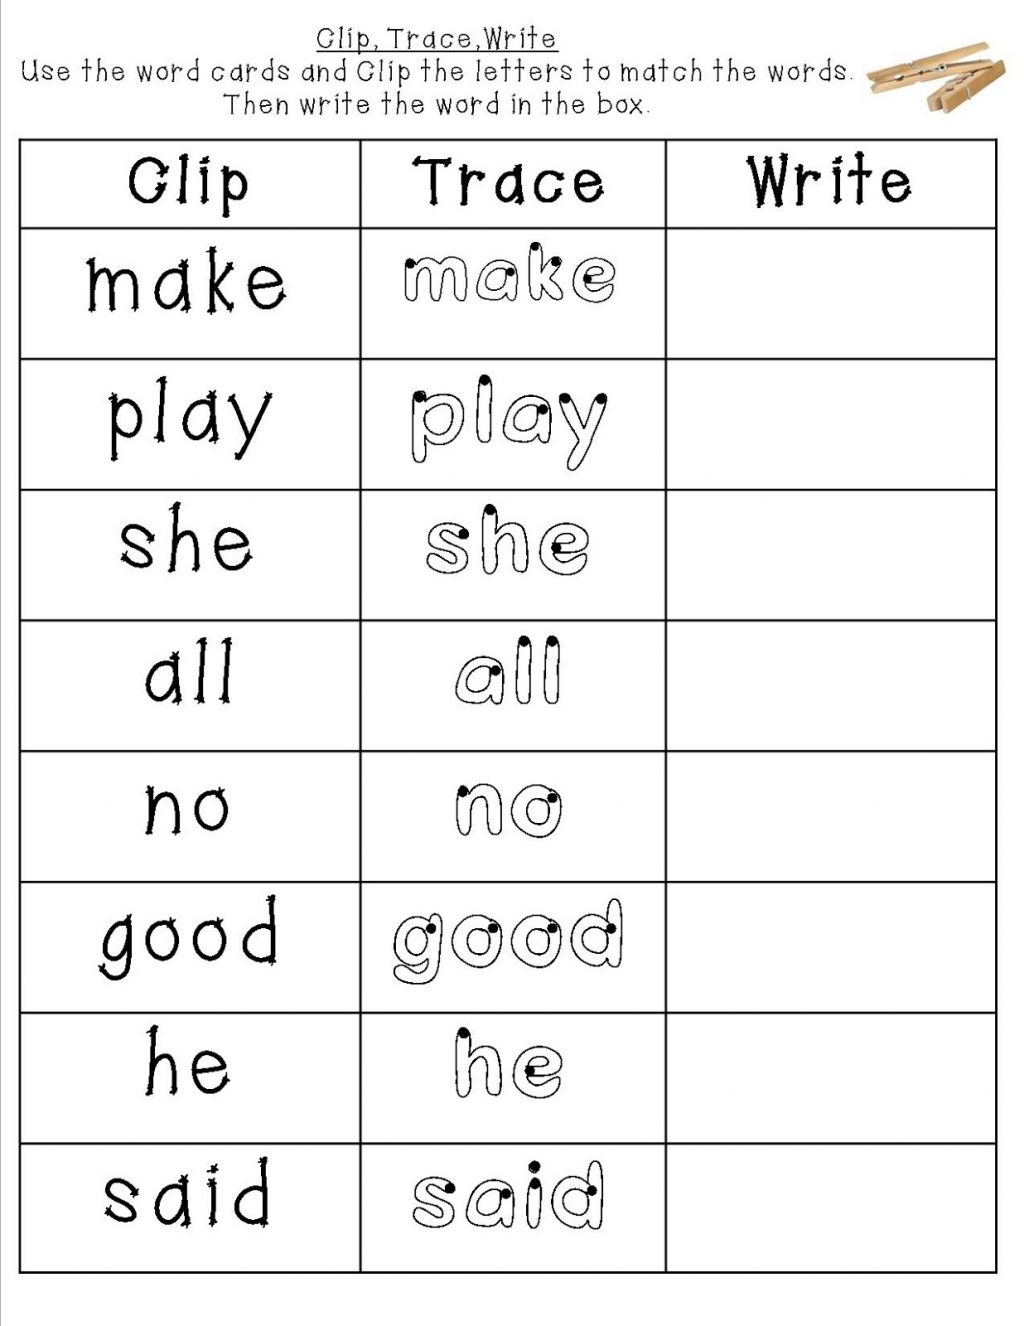 Greatschools Org Nj And Basicndergarten Sight Words Worksheets Fords | Great Schools Printable Worksheets